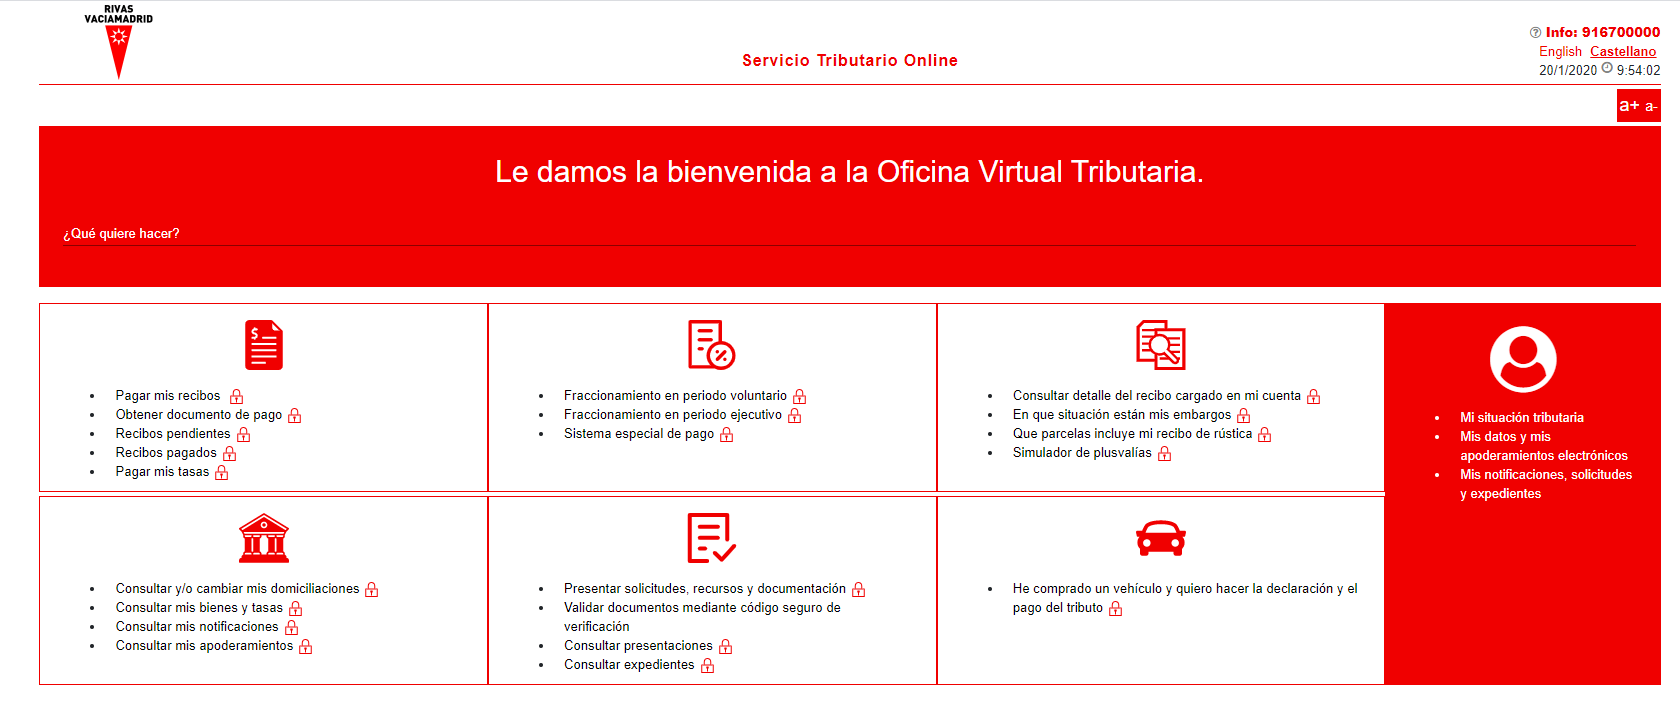 oficina virtual tributaria